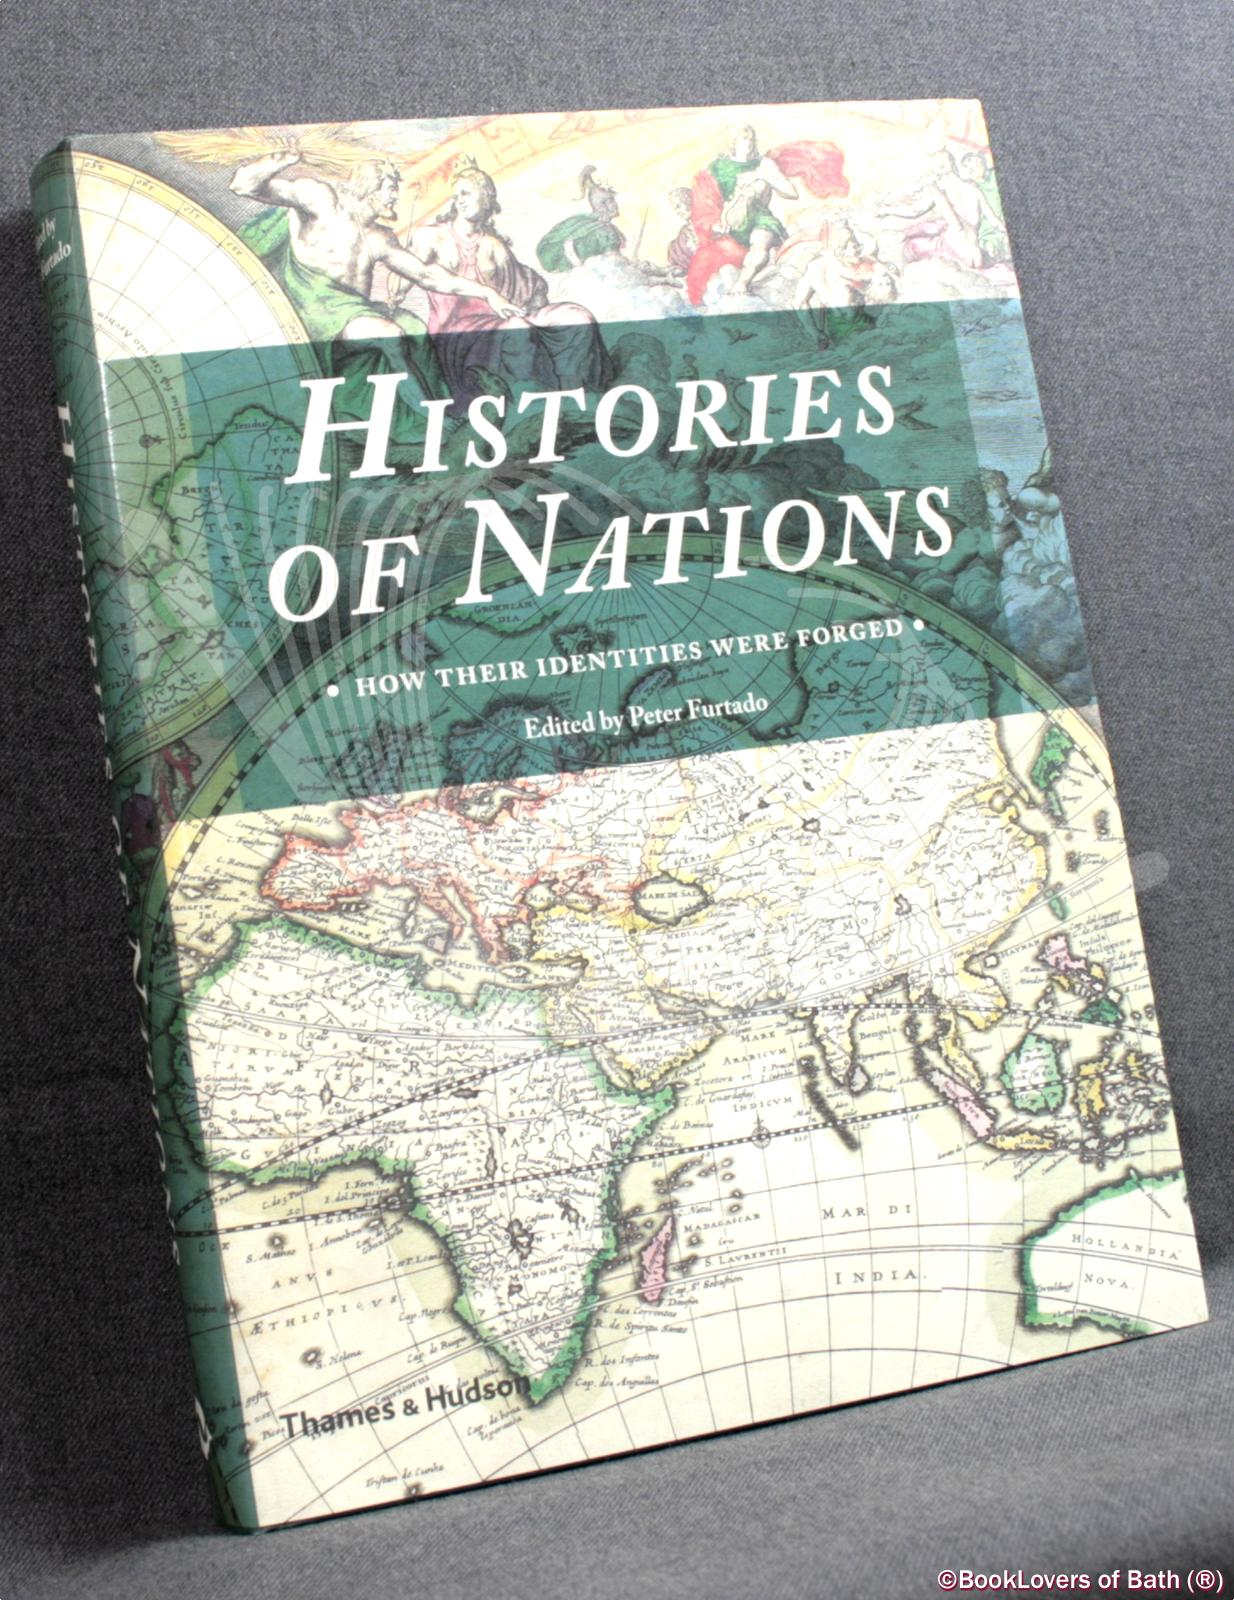 Histories of Nations: How Their Identities Were Forged - Edited by Peter Furtado